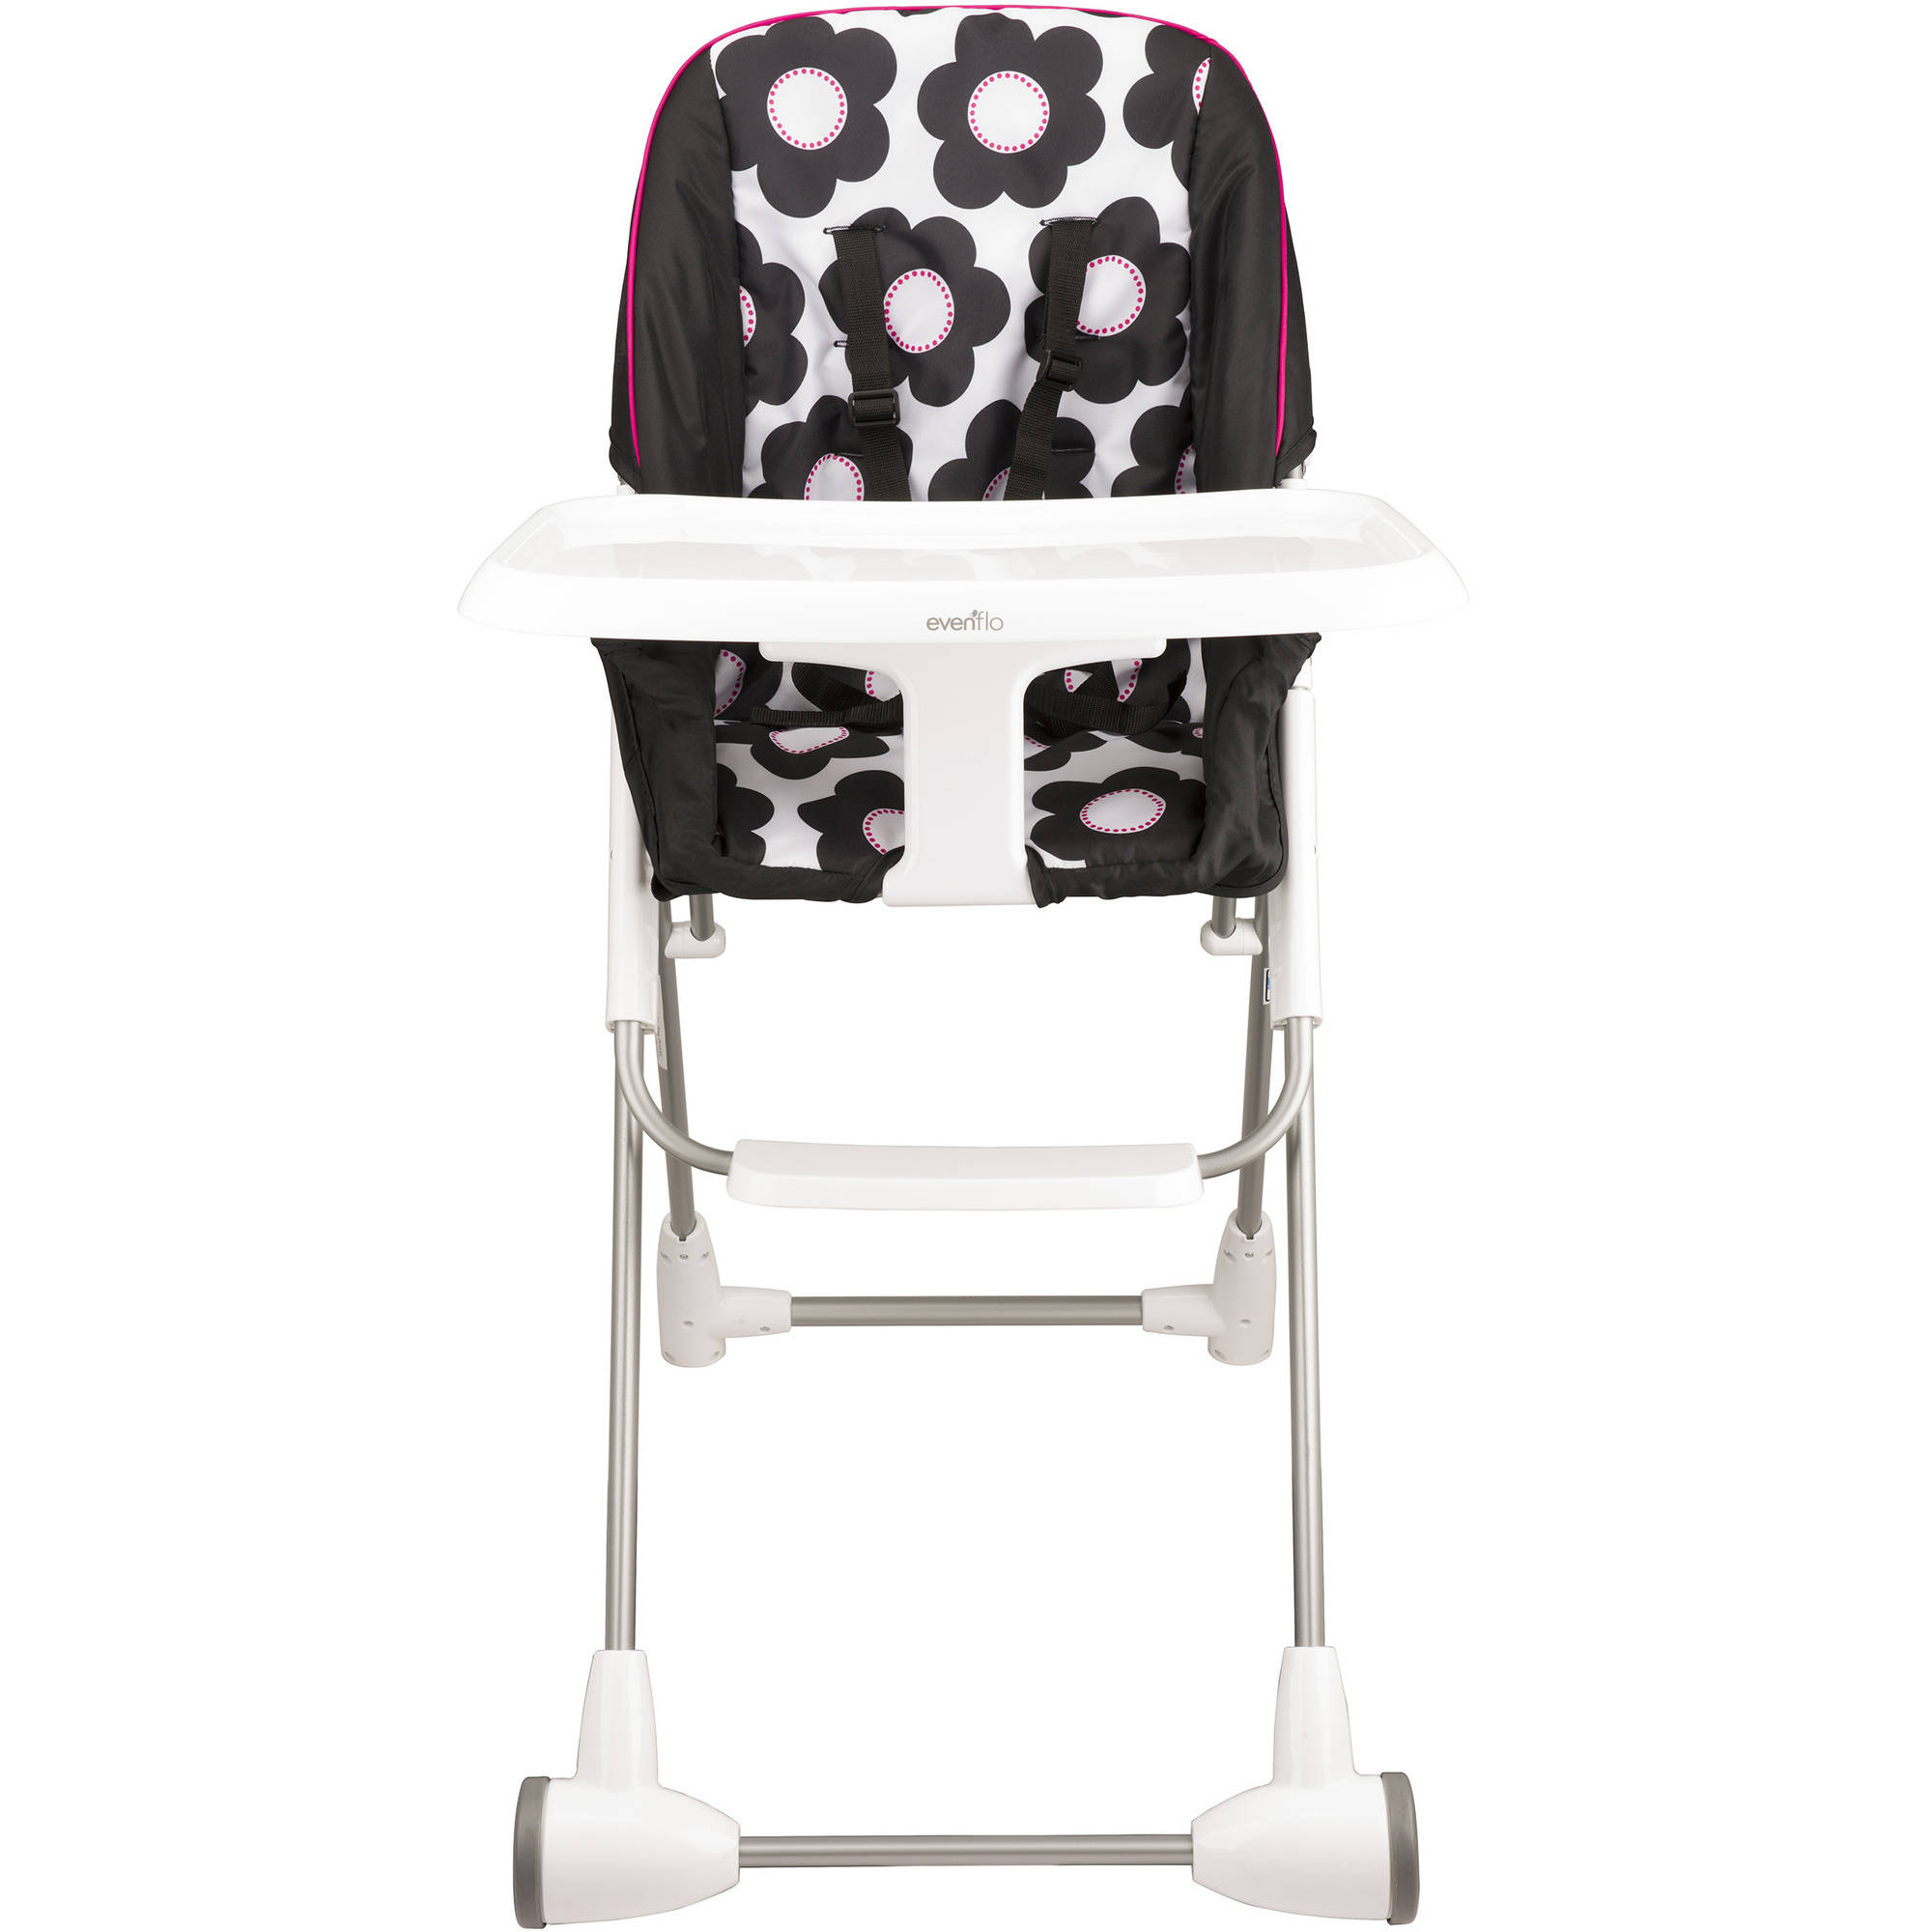 Evenflo Symmetry Flat Fold High Chair, Marianna